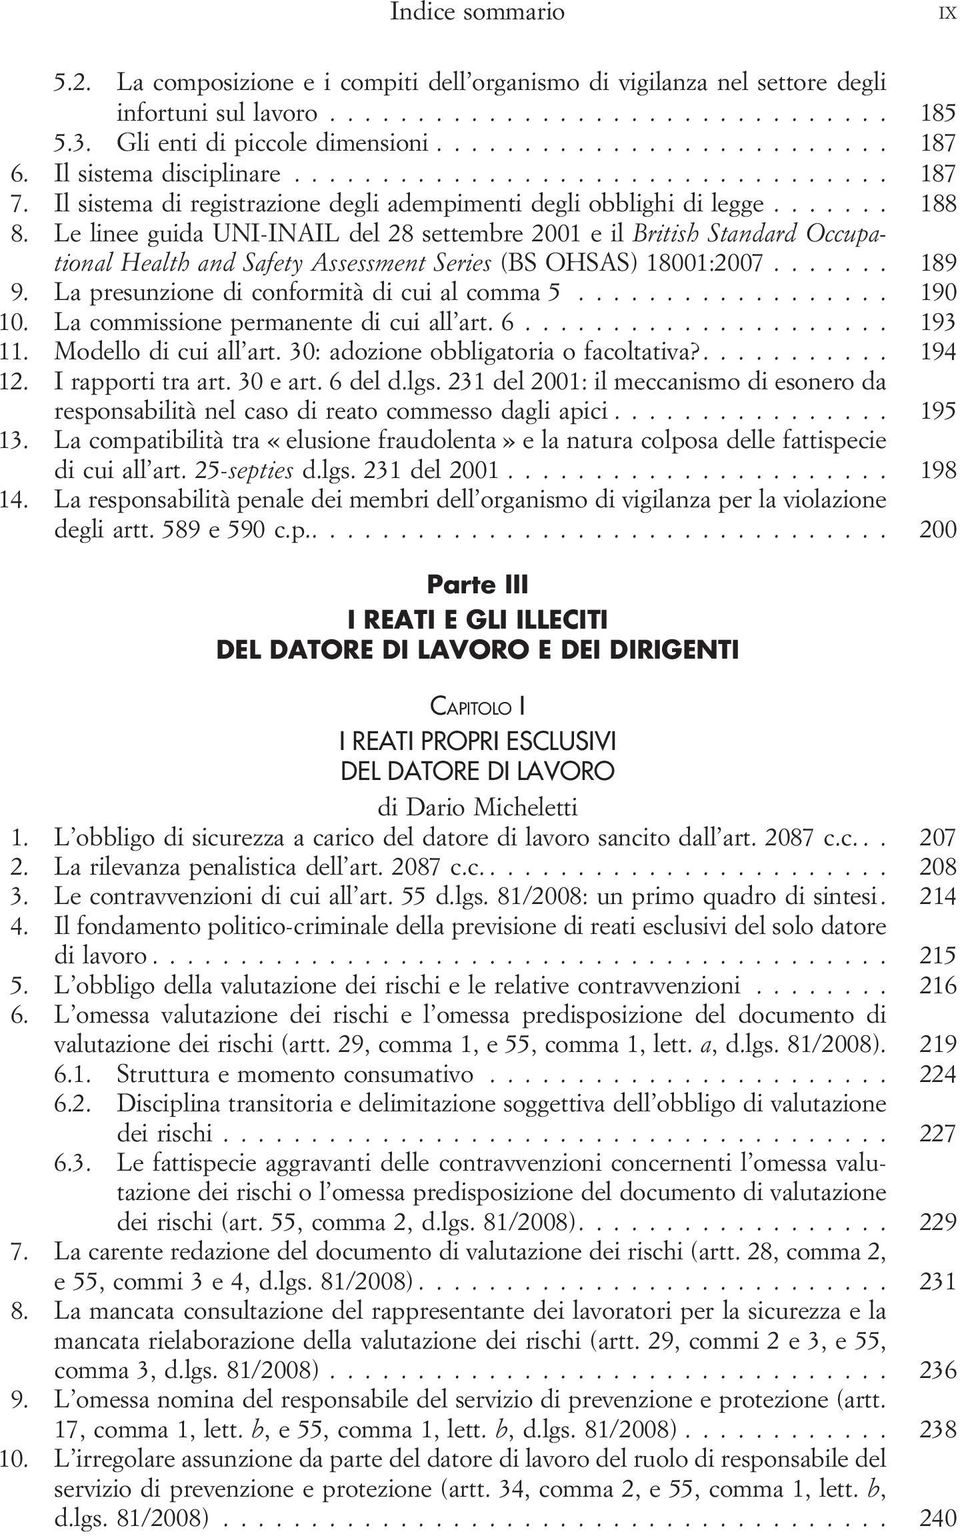 Le linee guida UNI-INAIL del 28 settembre 2001 e il British Standard Occupational Health and Safety Assessment Series (BS OHSAS) 18001:2007... 189 9. La presunzione di conformità di cui al comma 5.